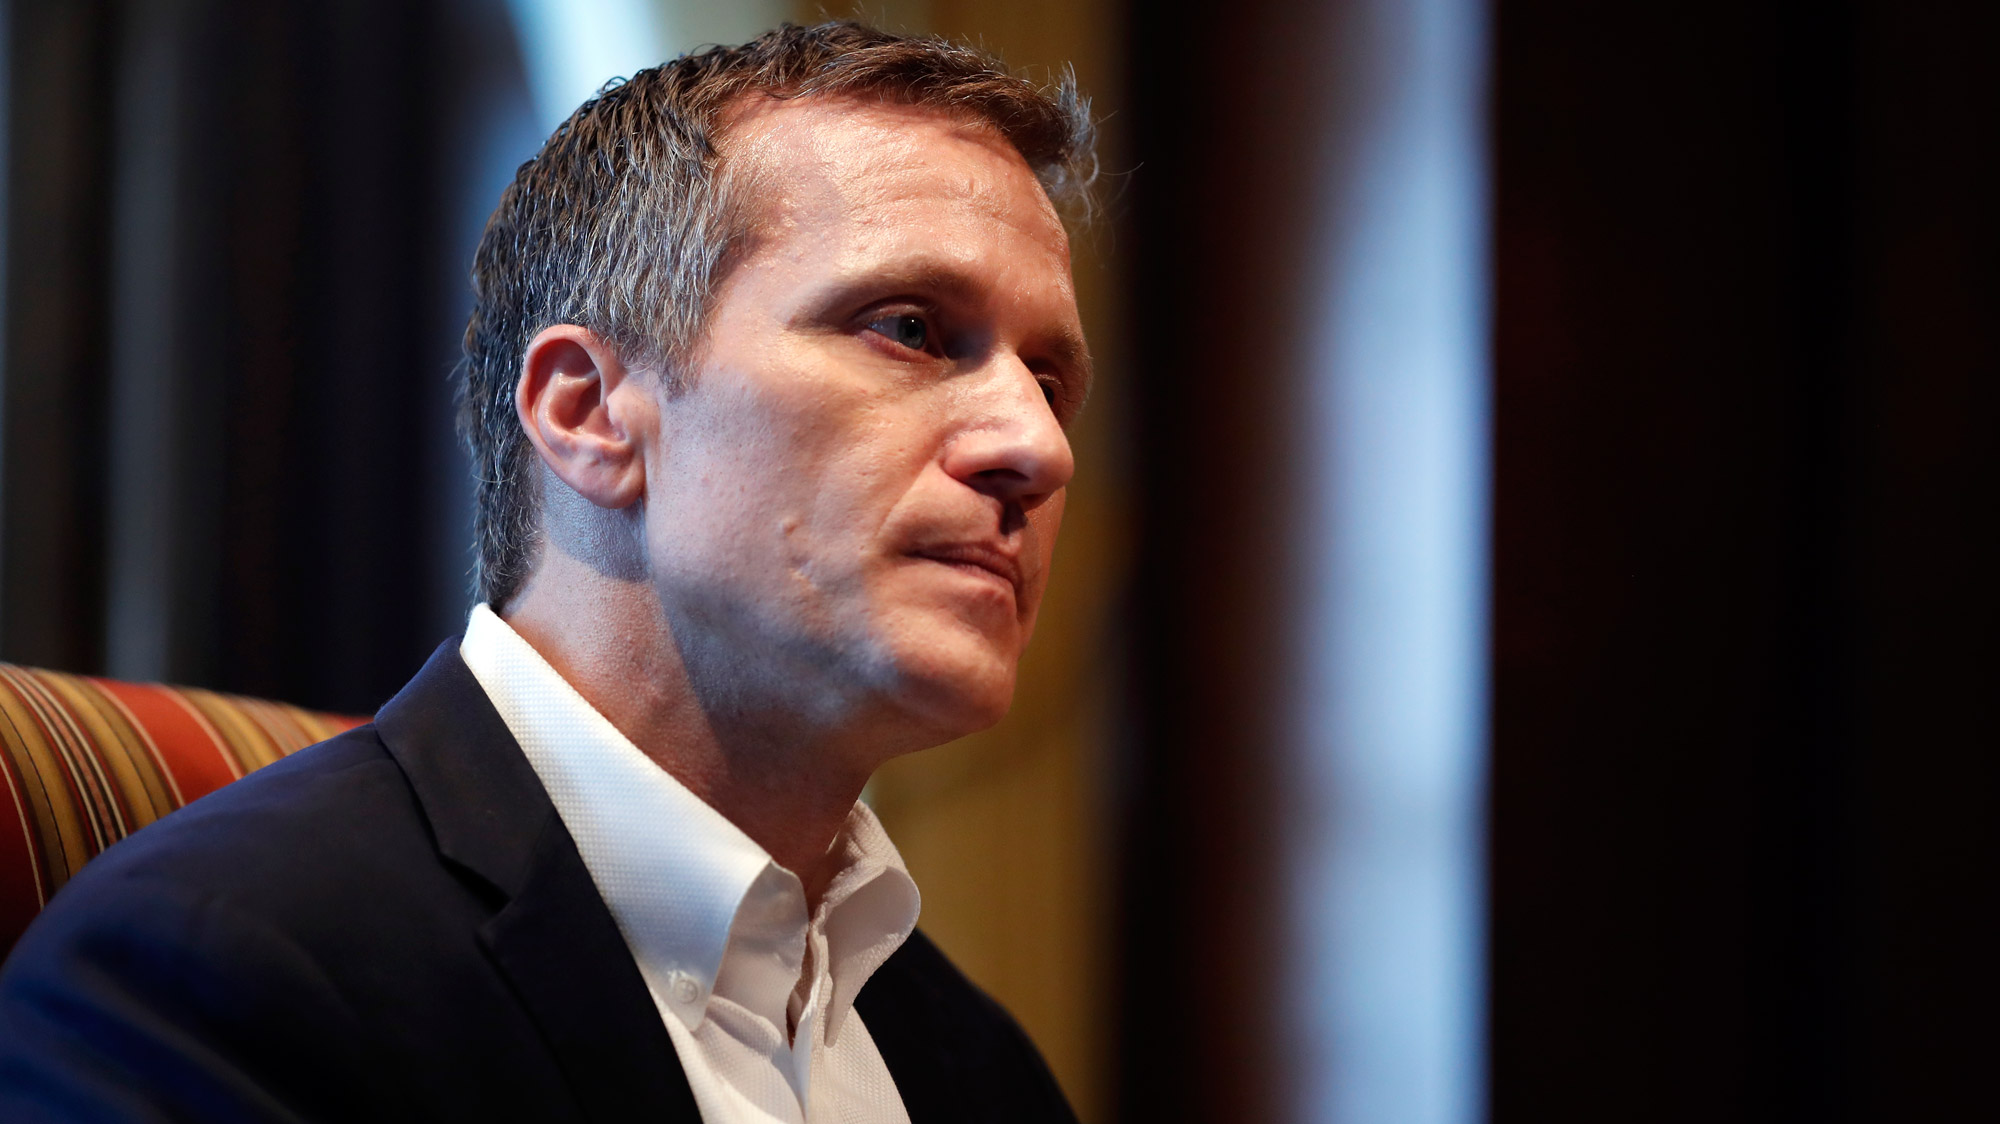 Missouri Governor Eric Greitens indicted on invasion of privacy charge